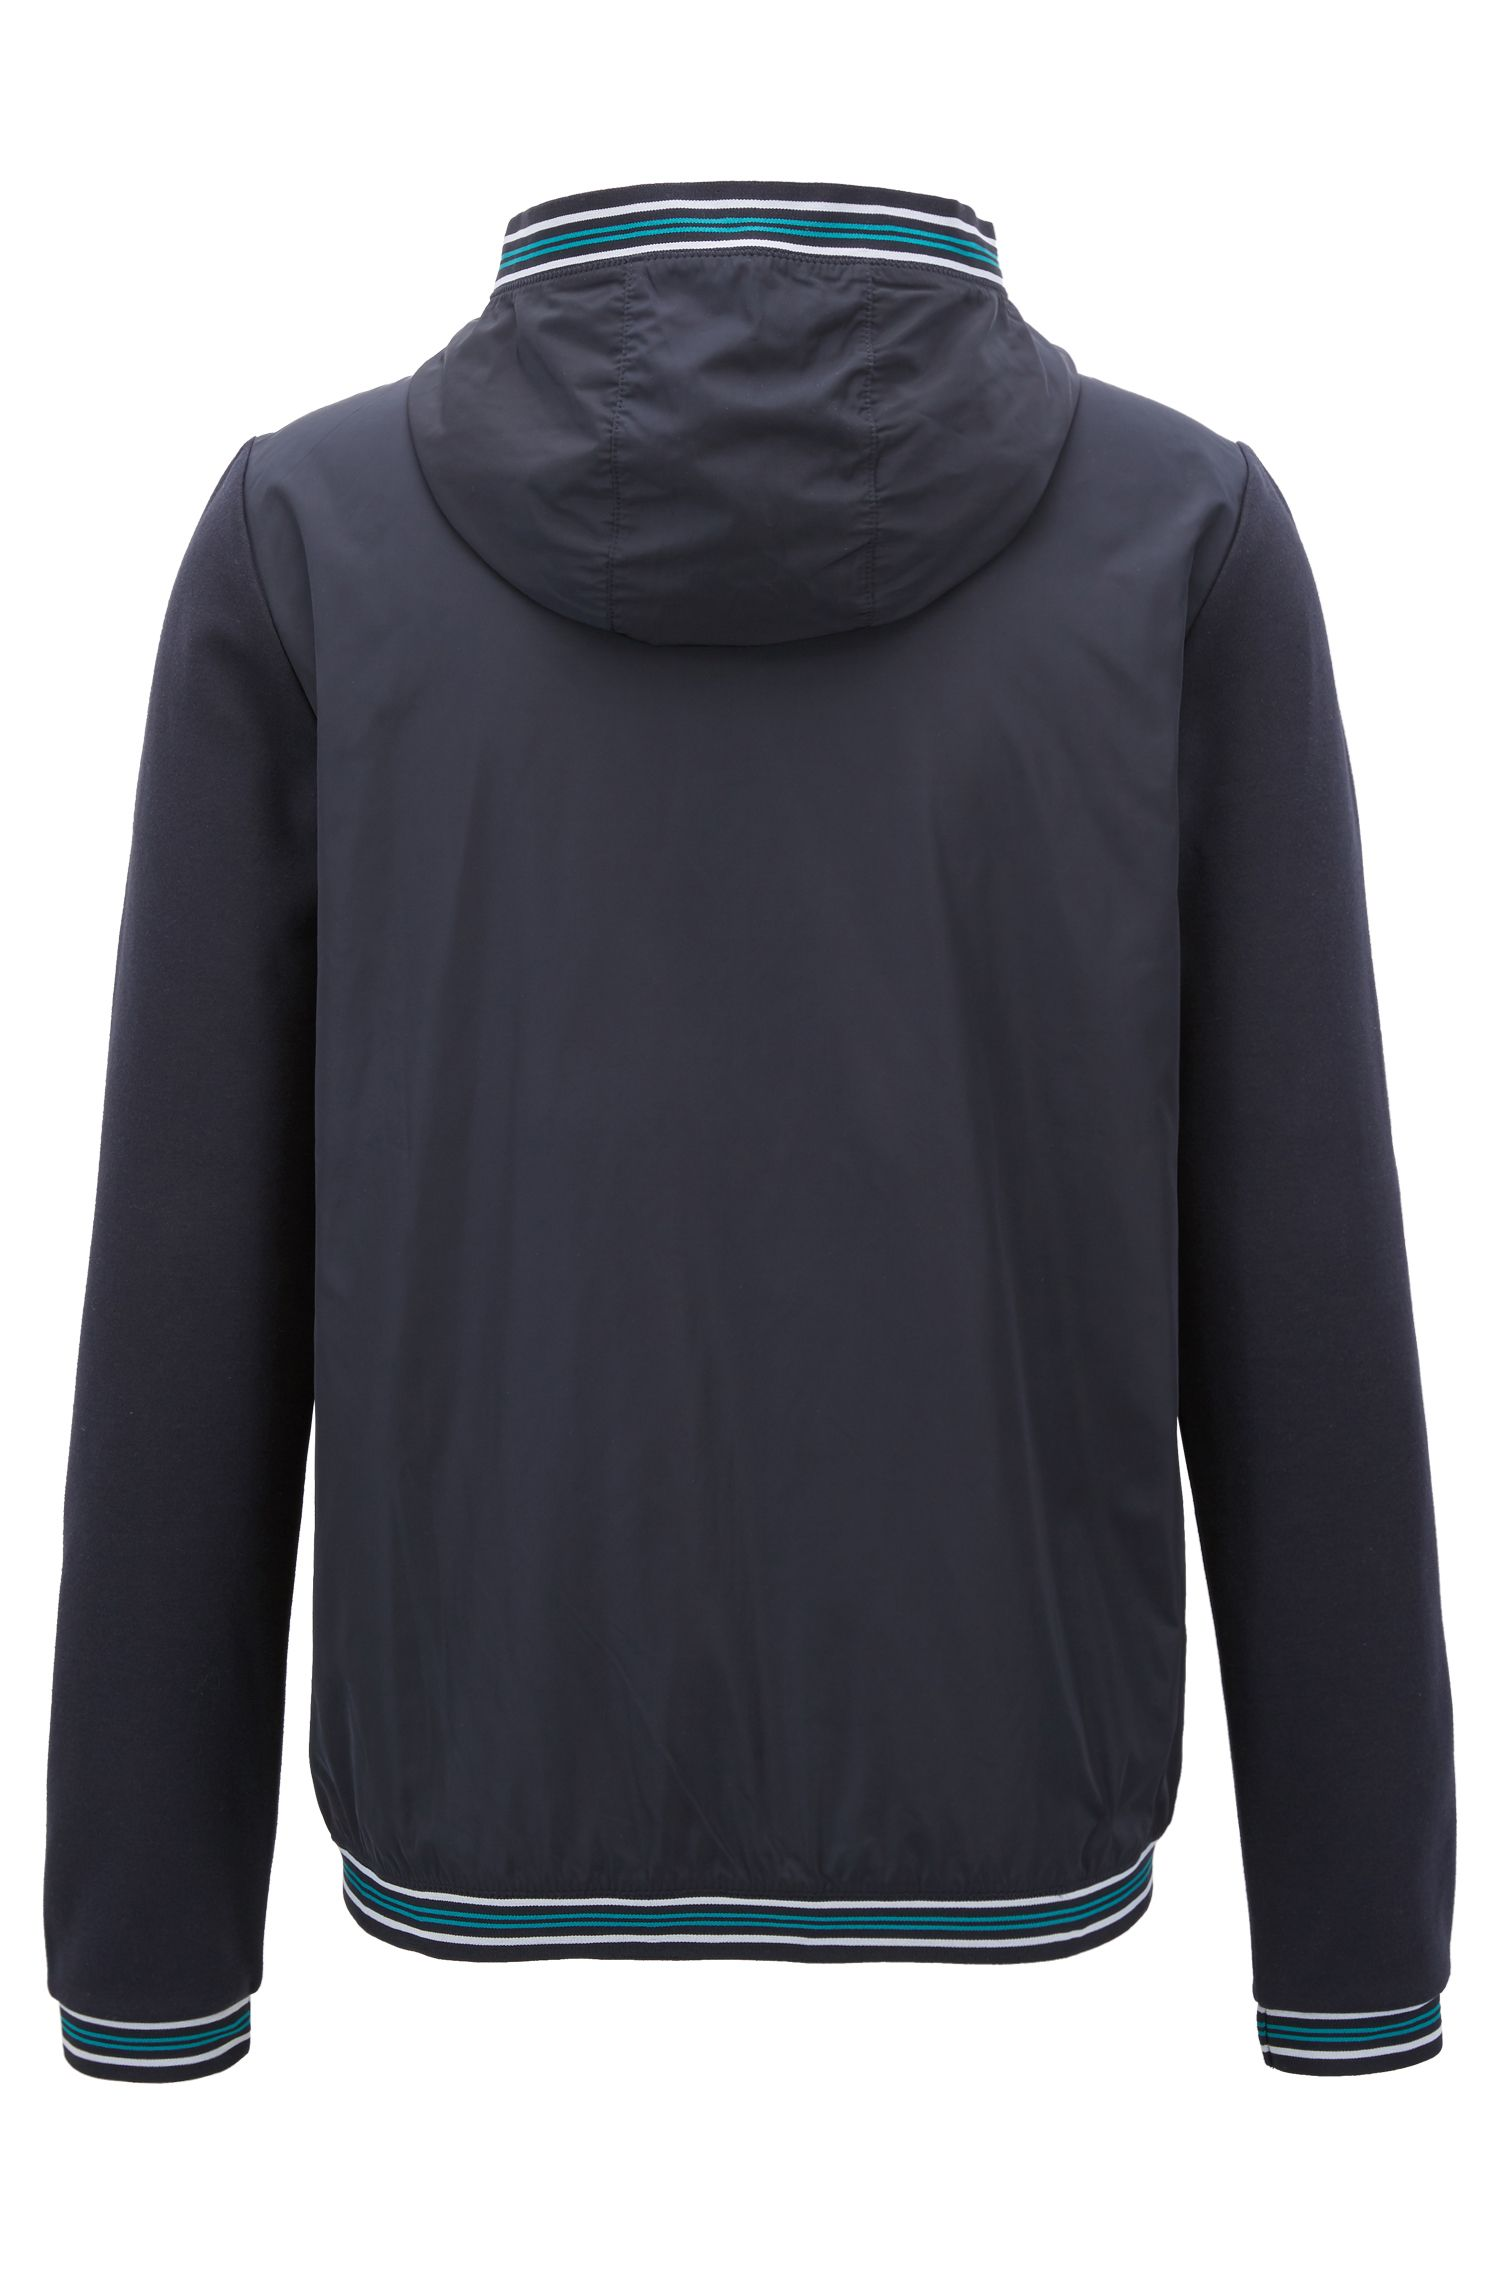 Zippered hooded sweatshirt with tape trims